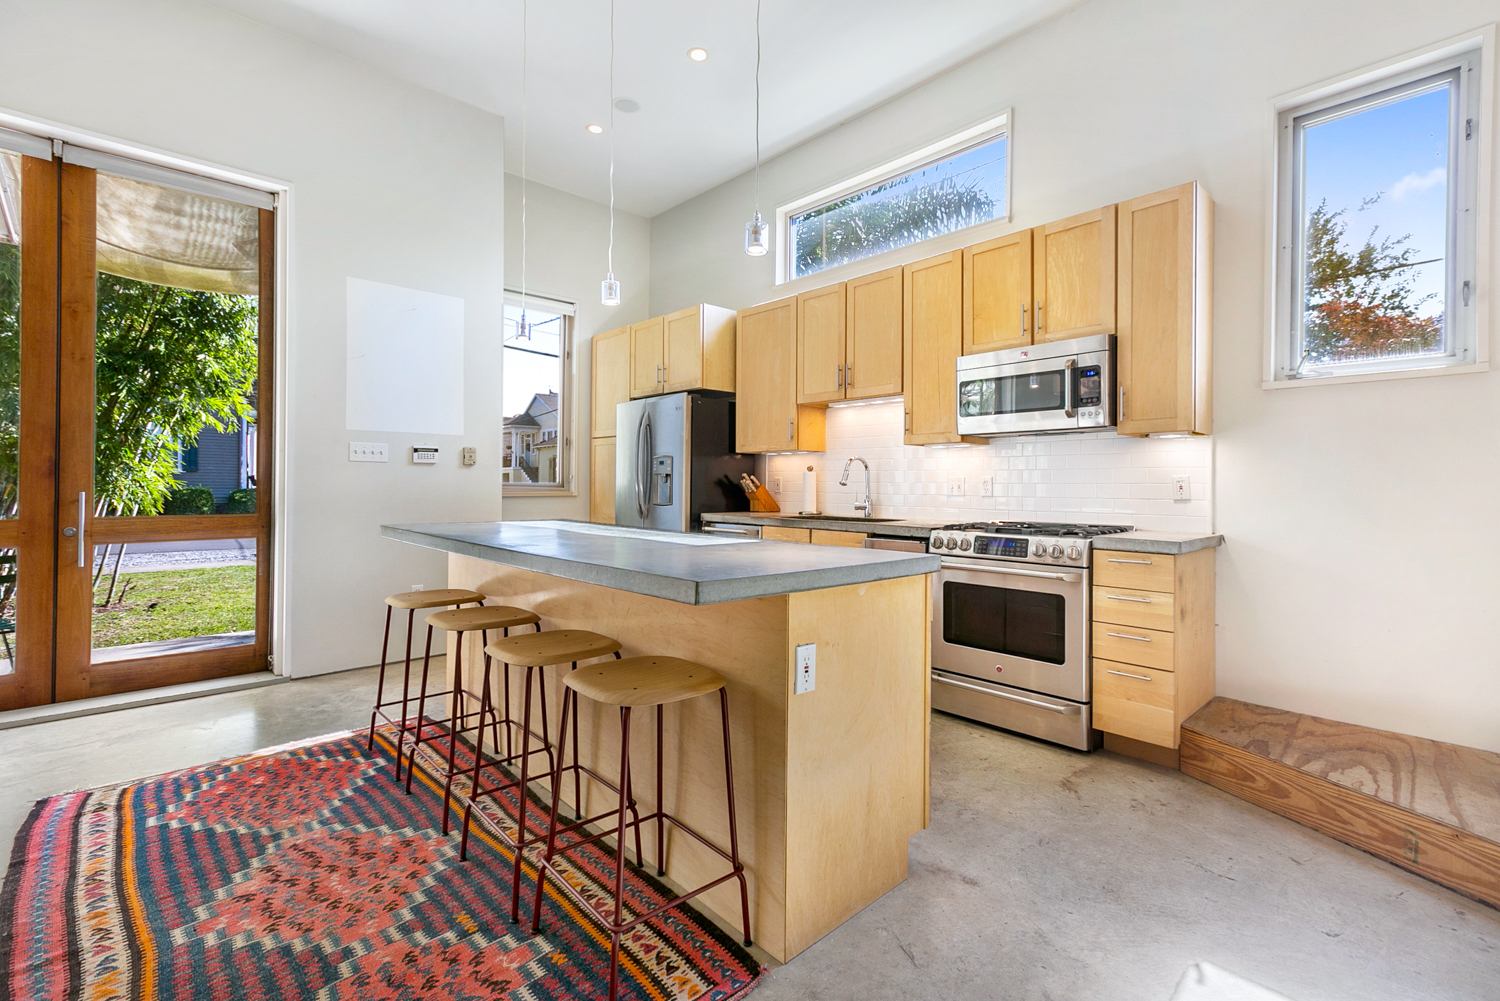 Uptown, Condo, 2 beds, 3.0 baths, $5000 per month New Orleans Rental - devie image_4